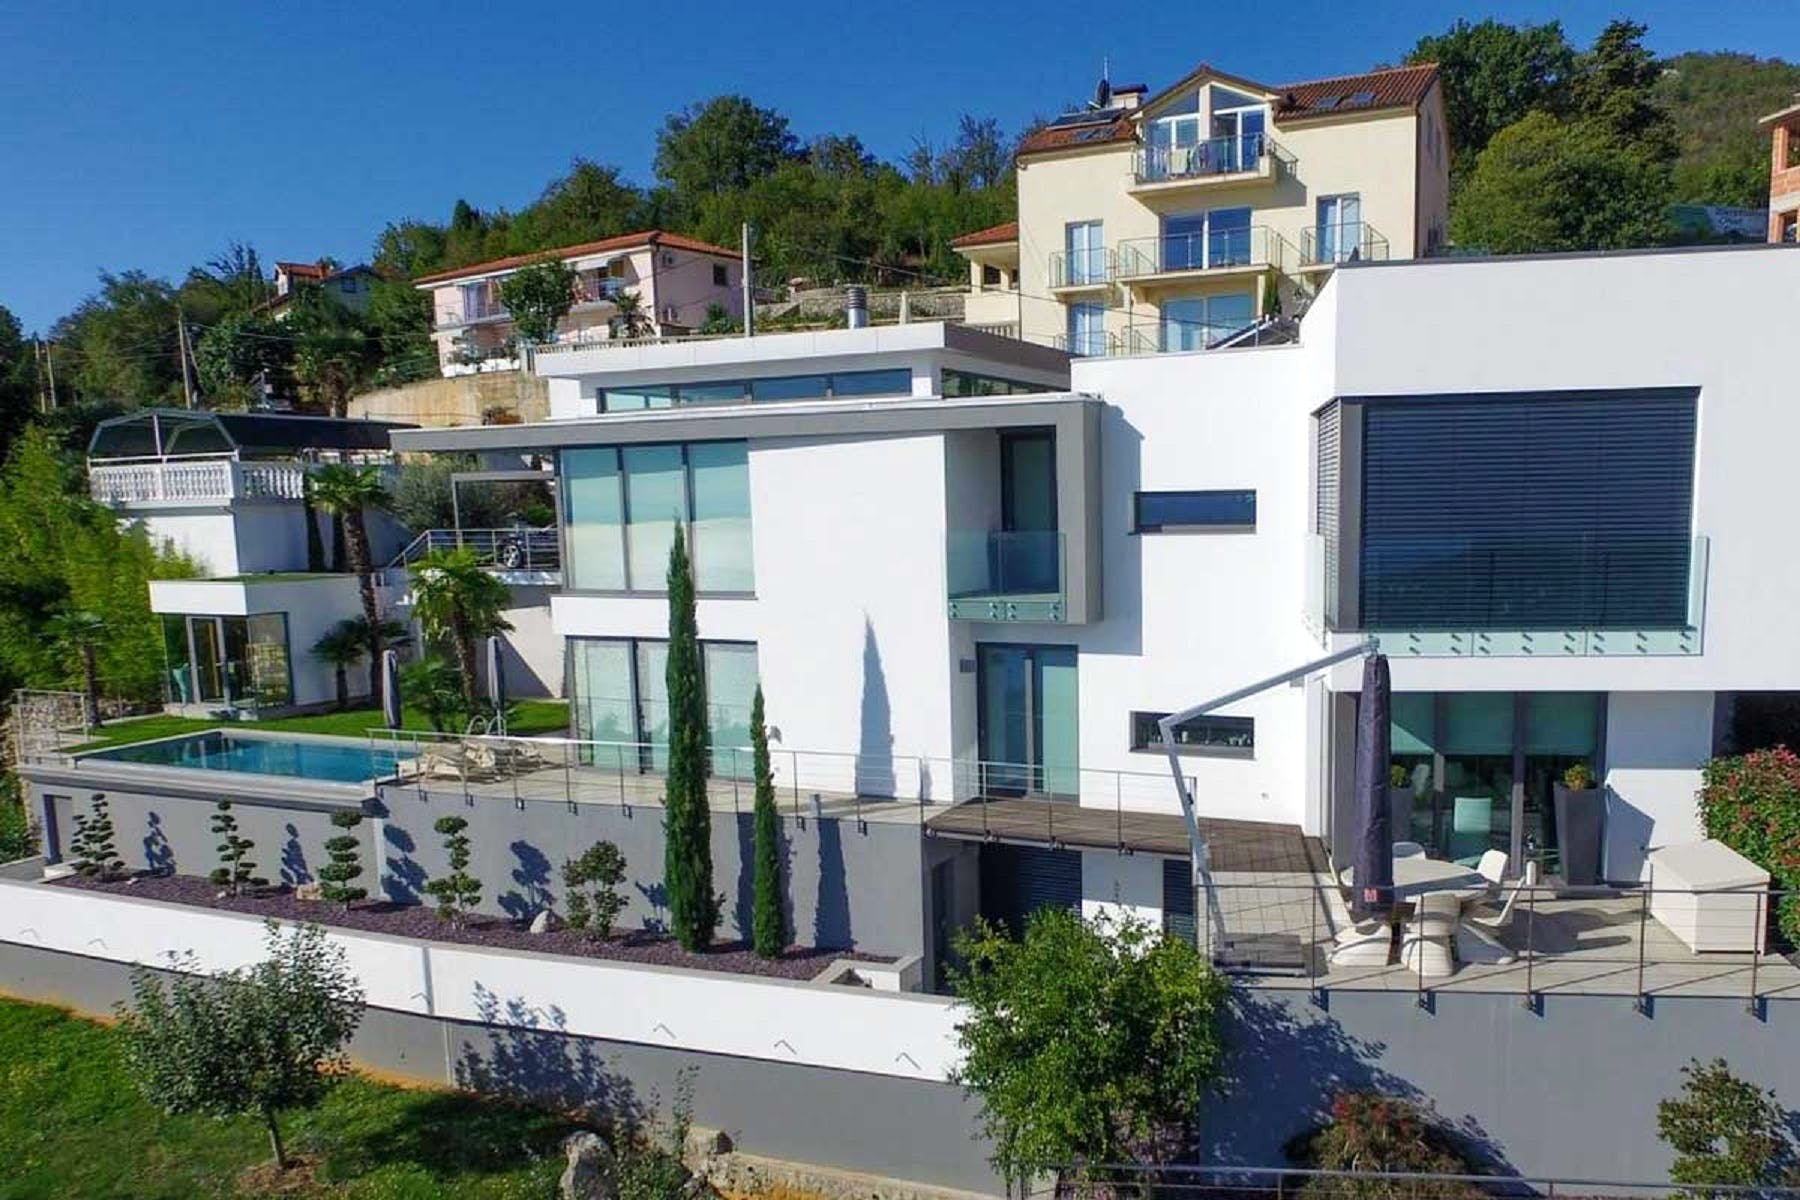 Modern design as a prime quality of the villa